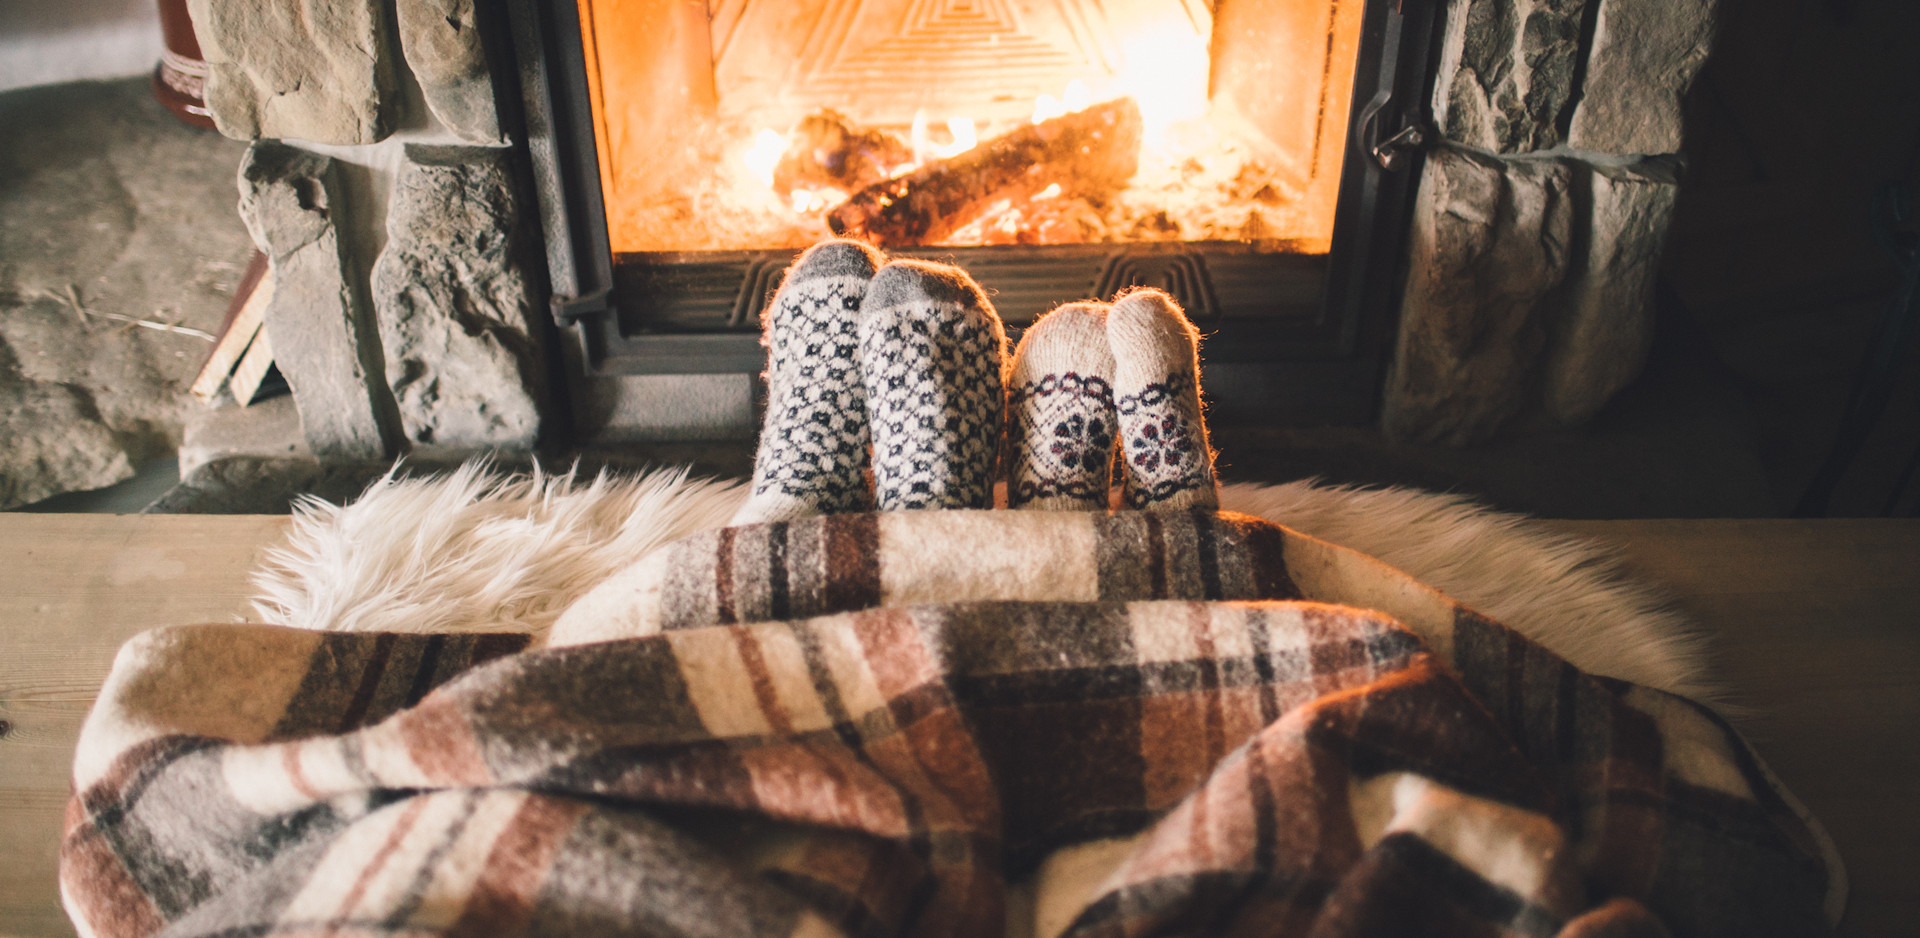 Couple snuggled up with blanket and warm socks in front of fireplace